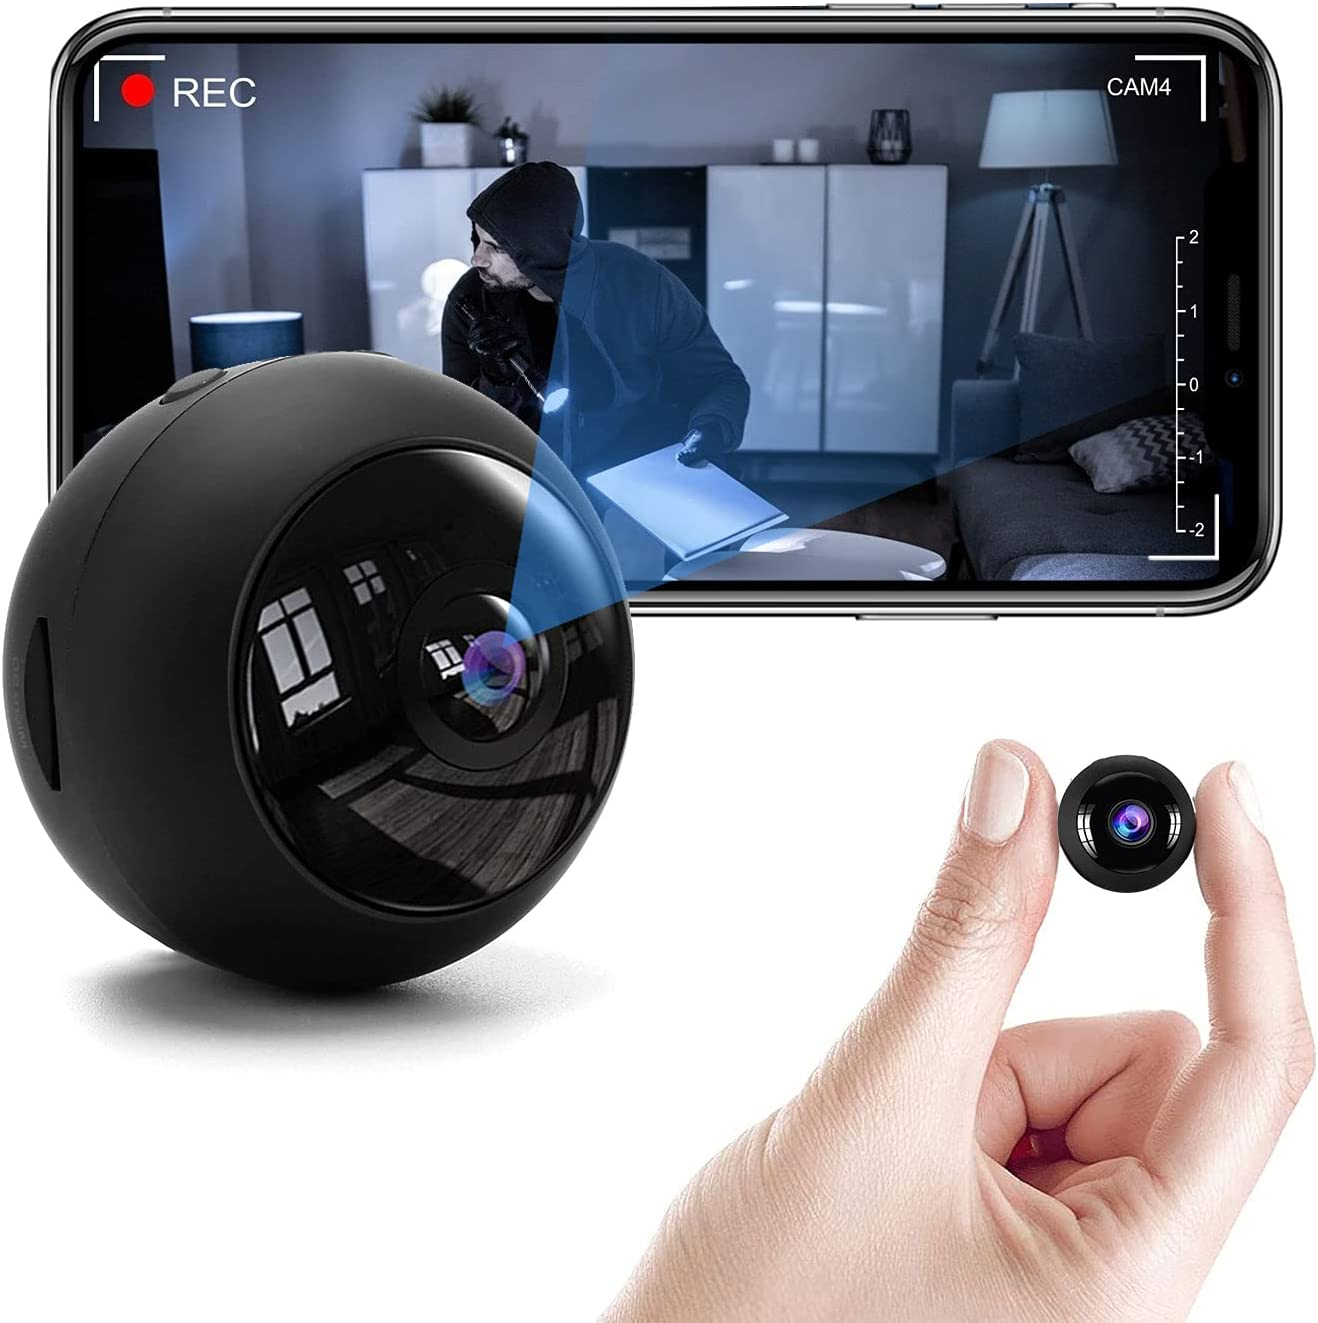 1080P Mini Spy WiFi Camera, Home Security Hidden Camera with Audio, Small WiFi Video Camera Indoor Outdoor, Support 2.4hz and 5G WiFi/Record Video/Automatic Night Vision/Motion Detection